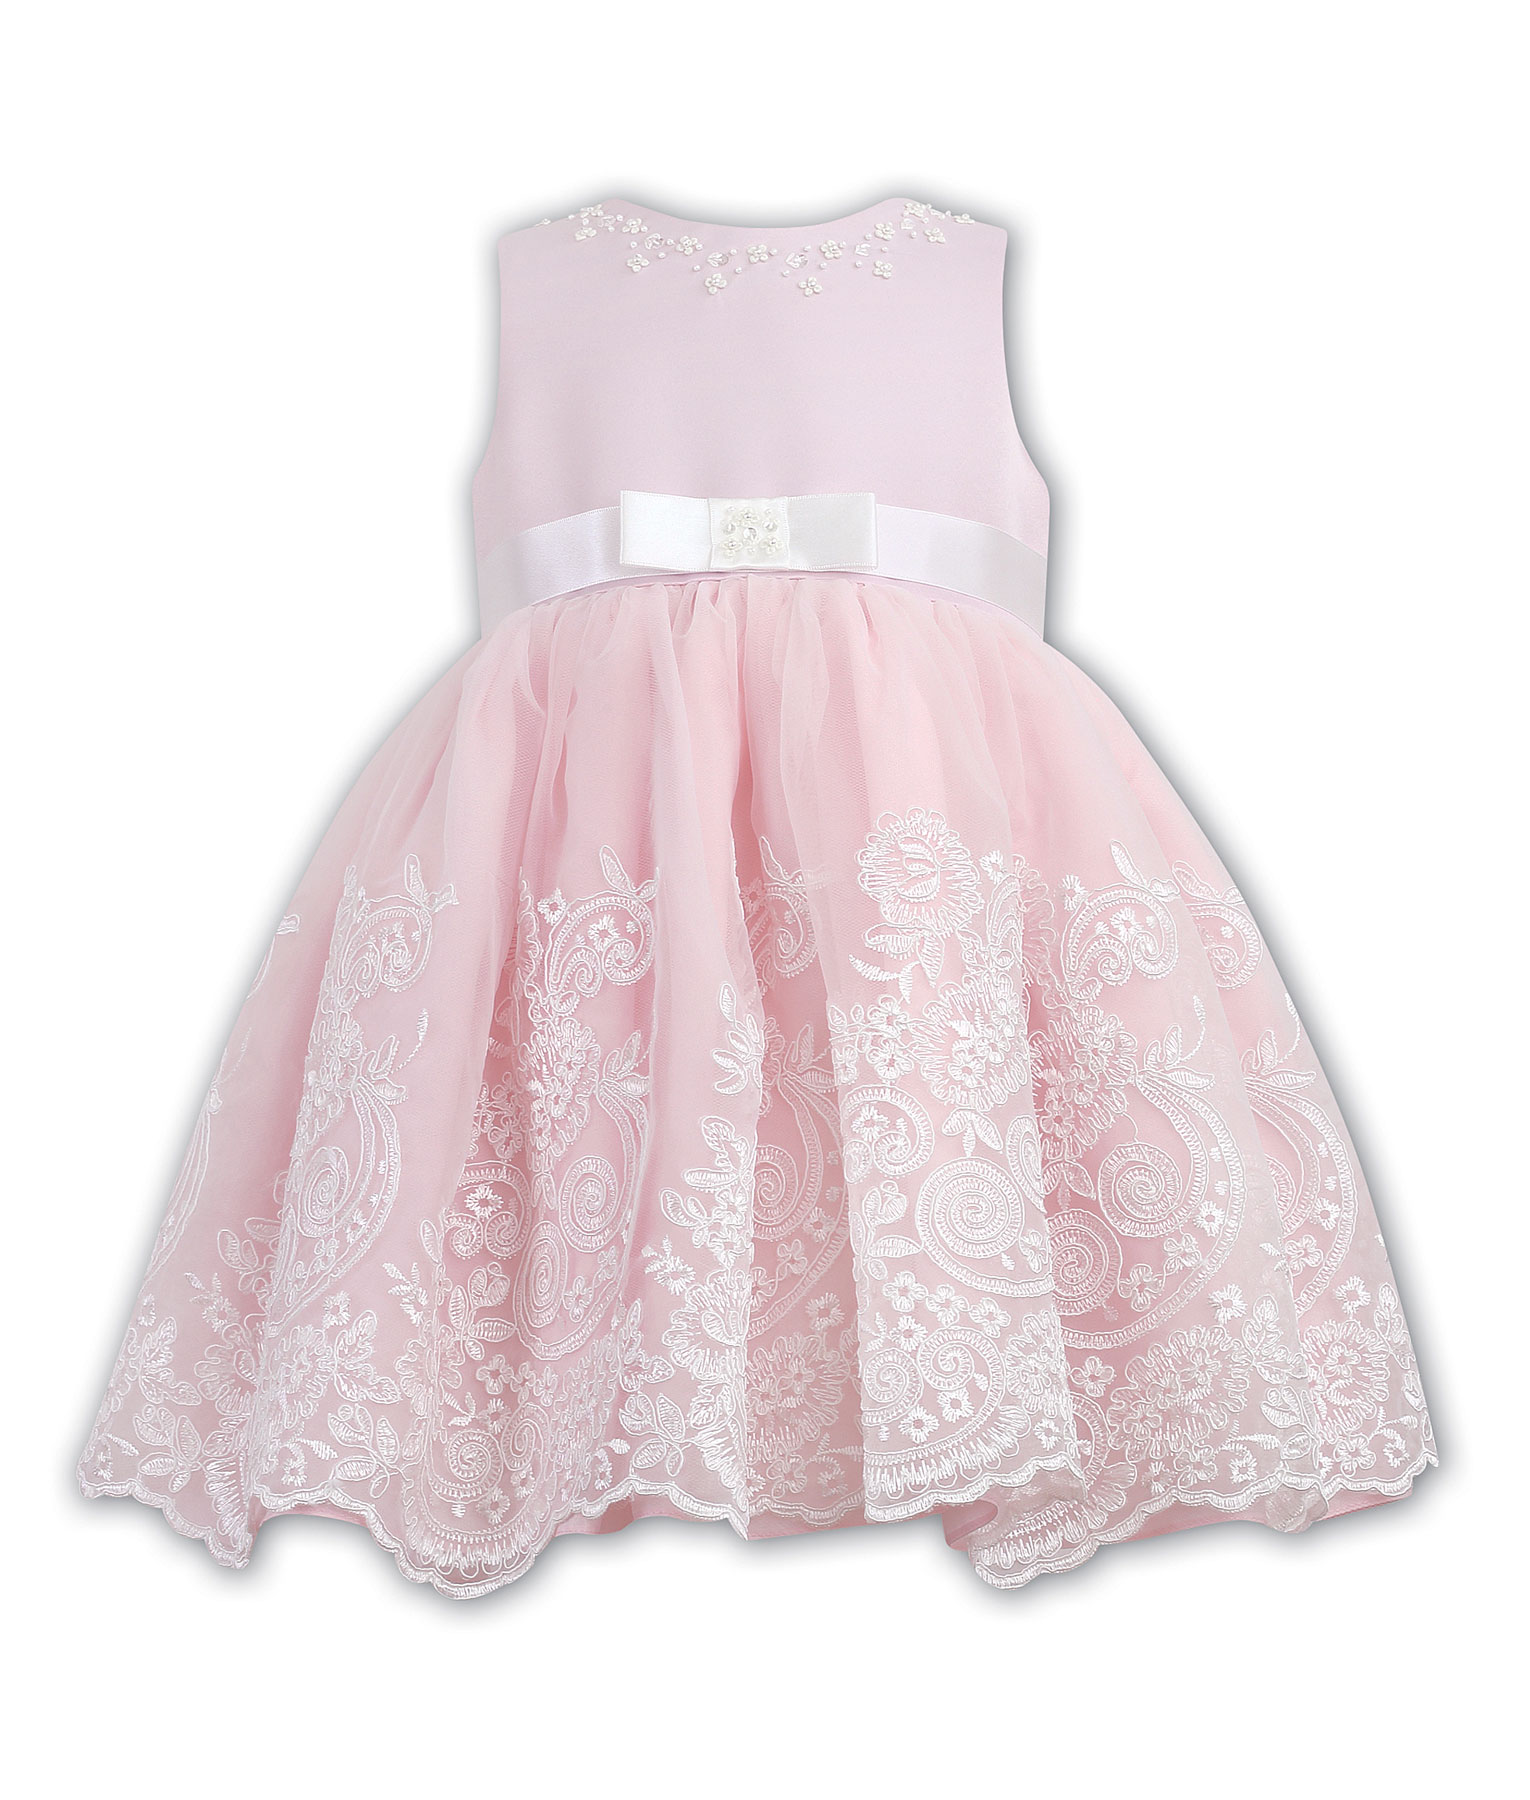 Christening Dress 070017c Baby Boutique Clothing